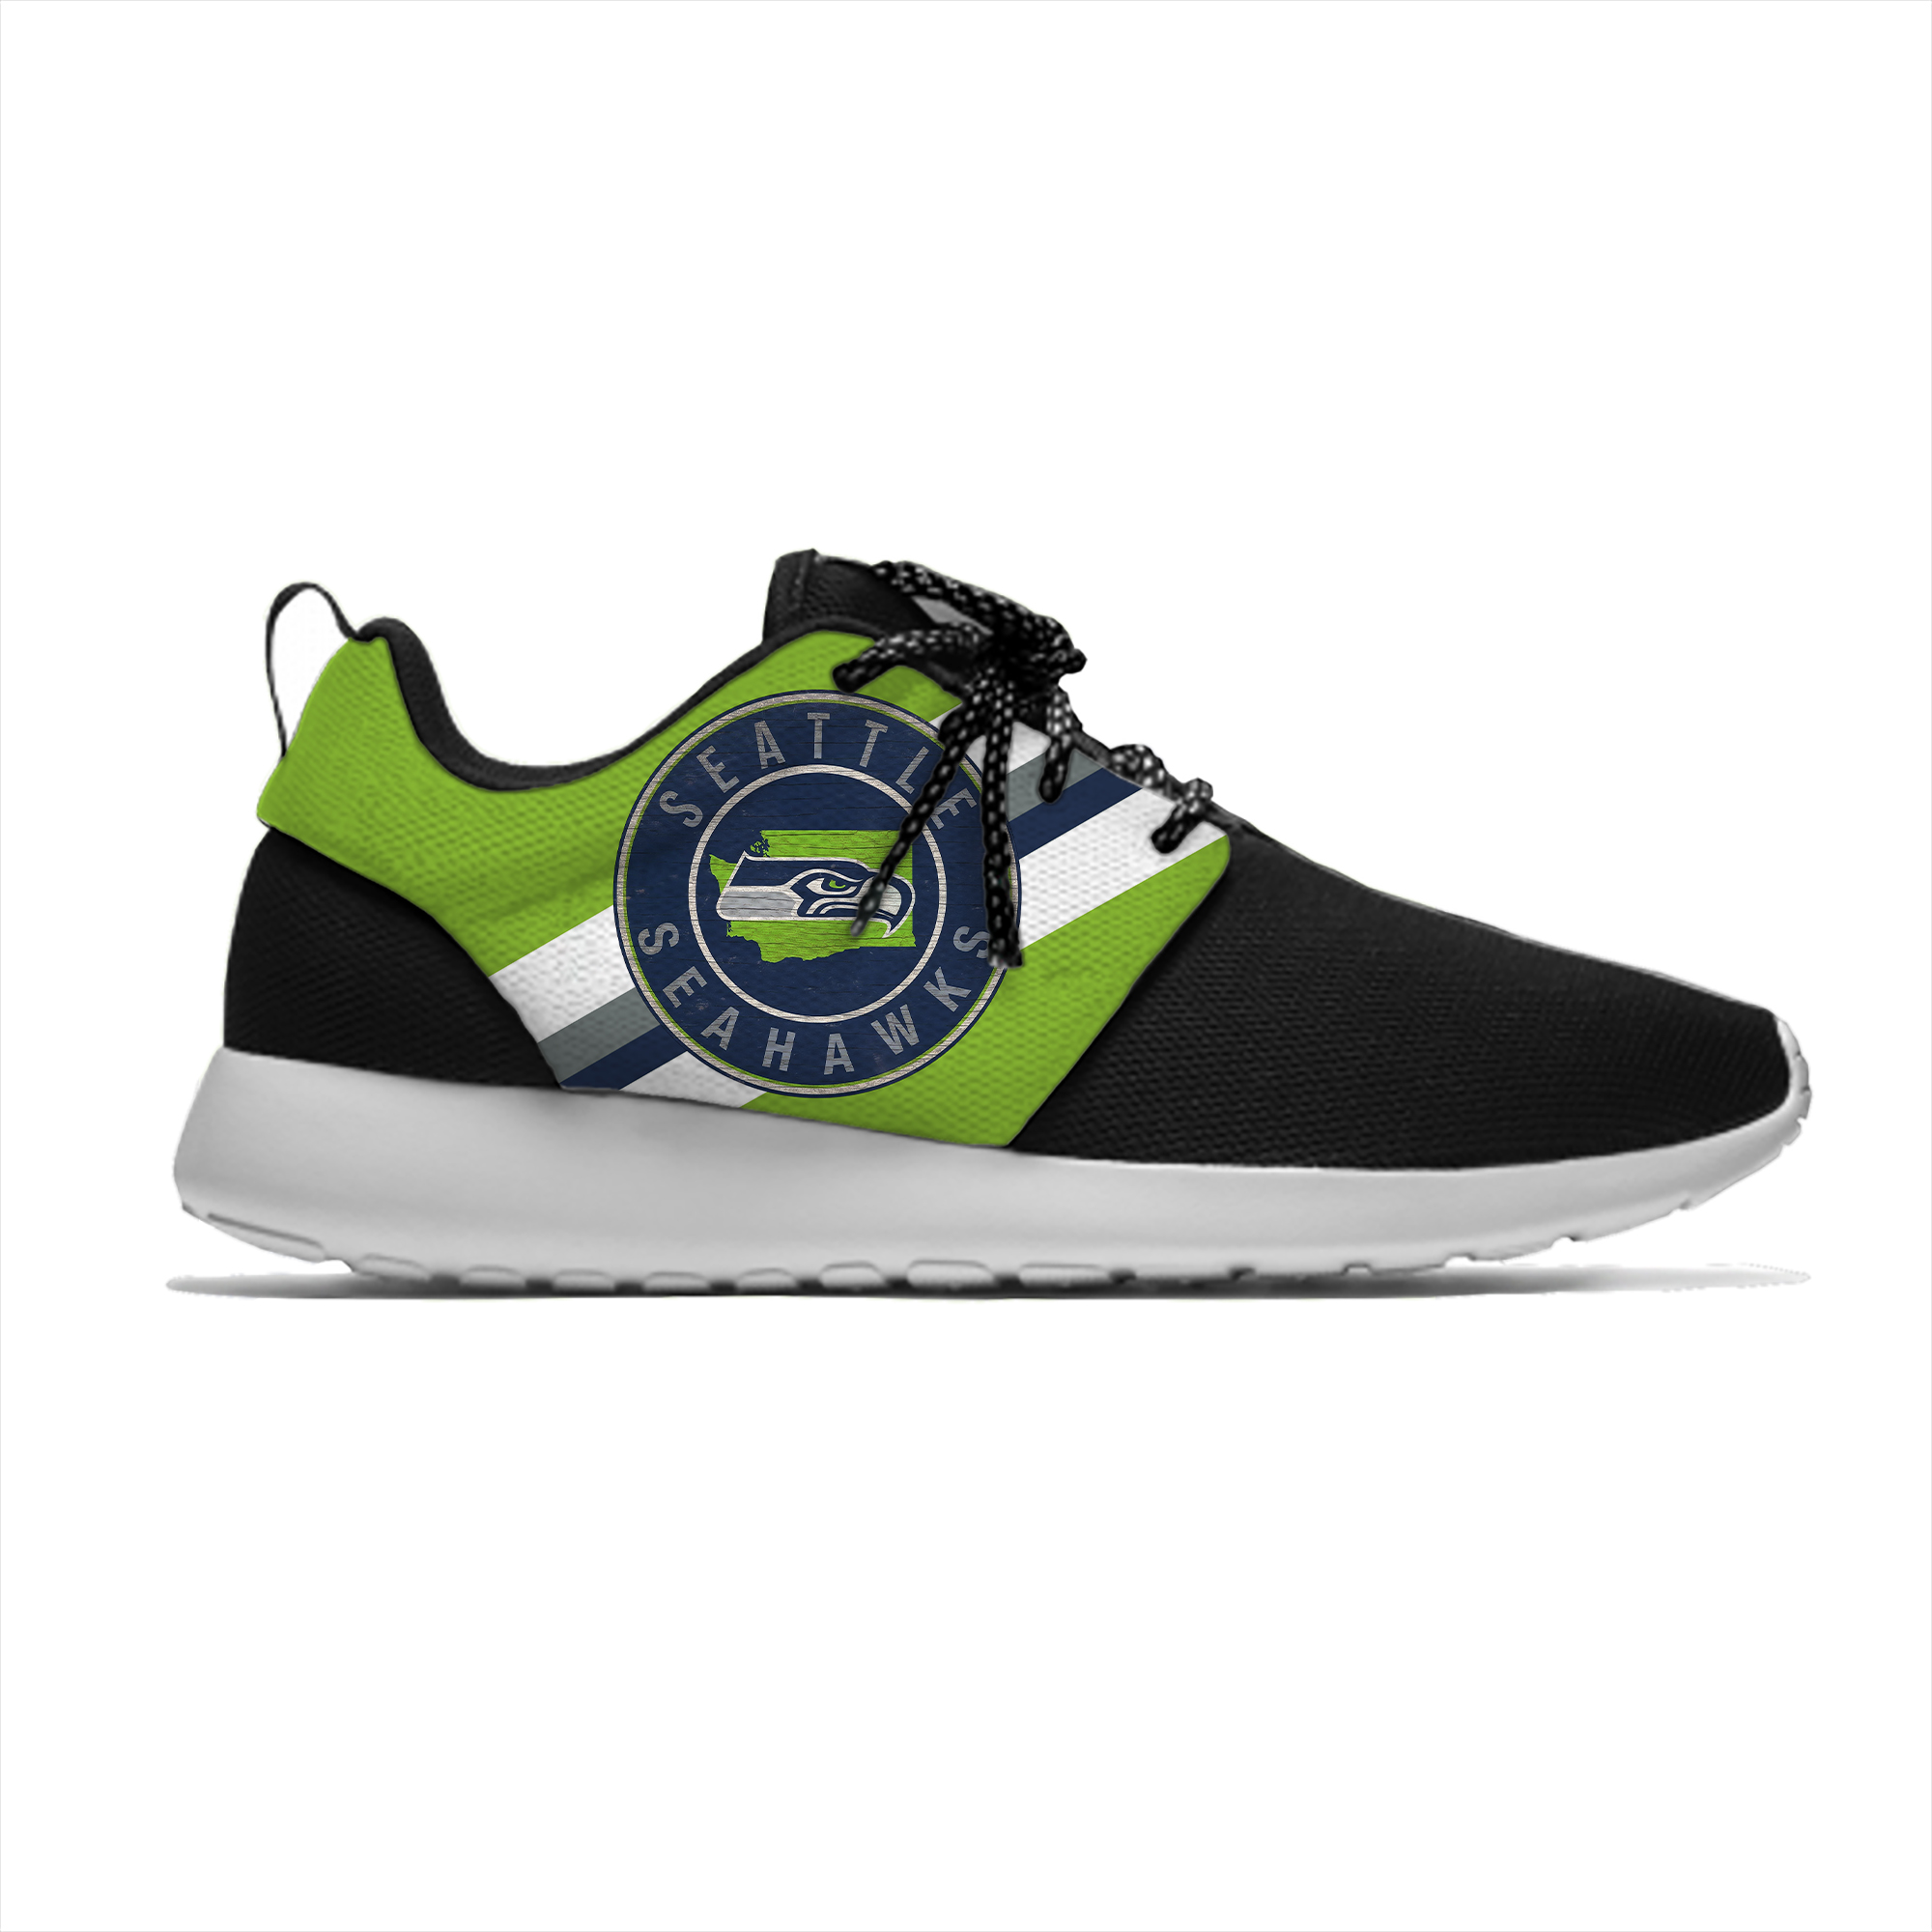 Seahawks Breathable Leisure Sport Sneakers Seattle Football Team Fans Lightweight Casual Men/Women Running Mesh Shoes image